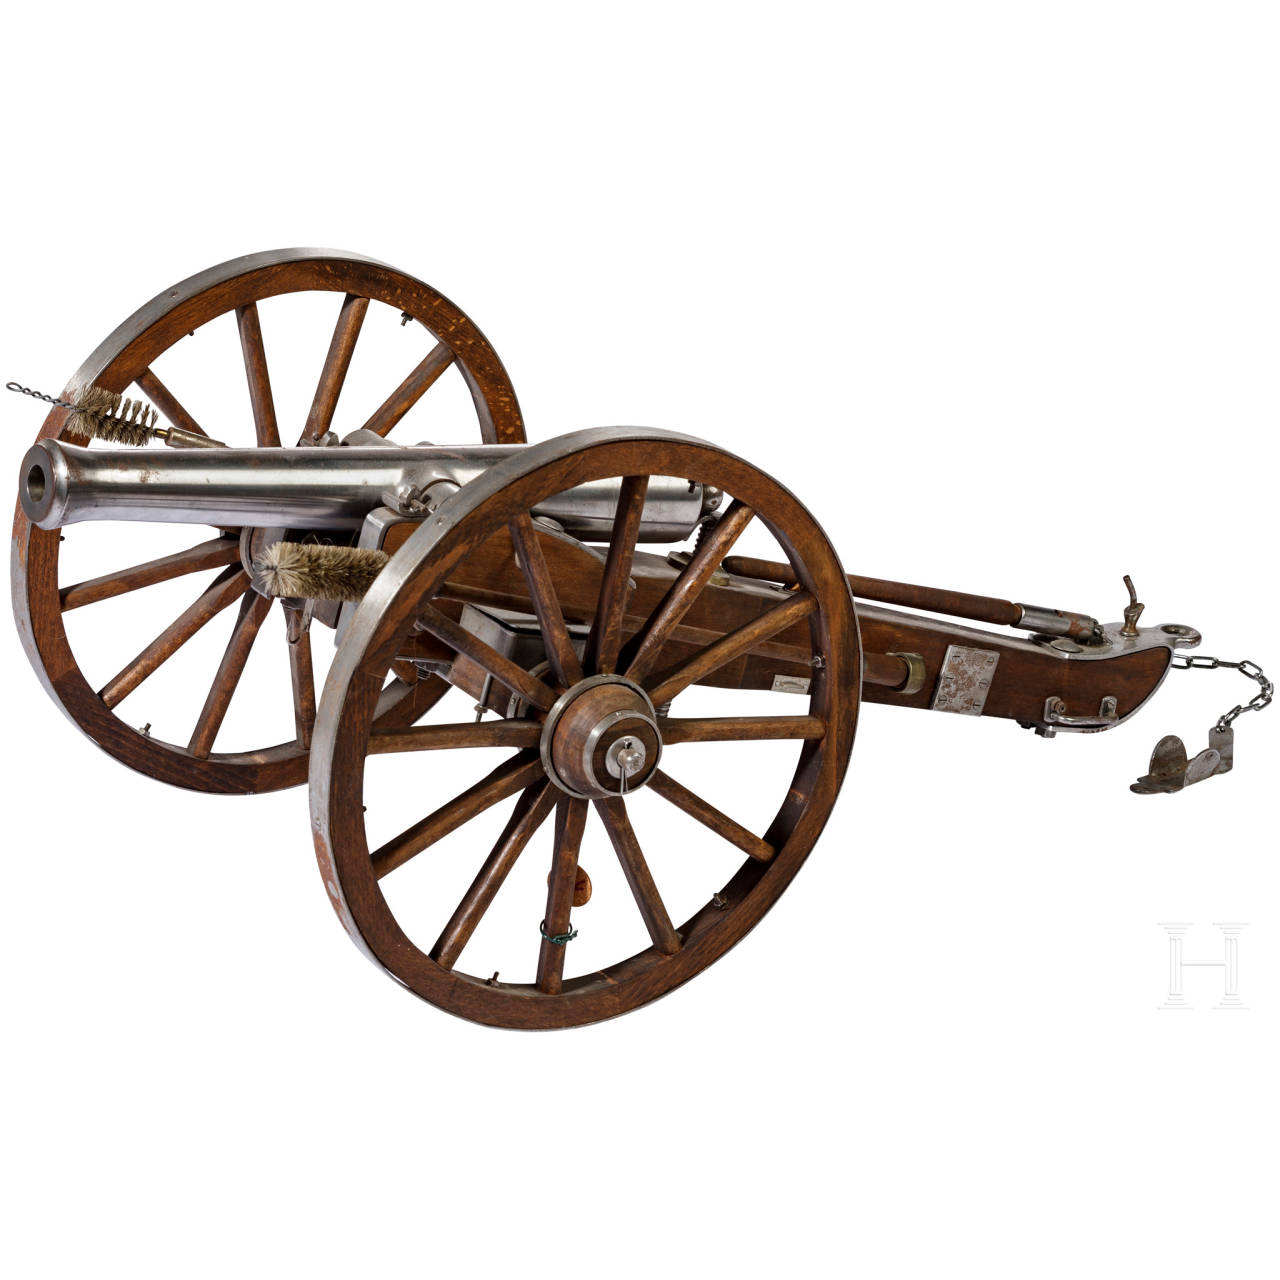 A miniature cannon in the style of the 17th century, Spanish reproduction, 2nd half of the 20th century